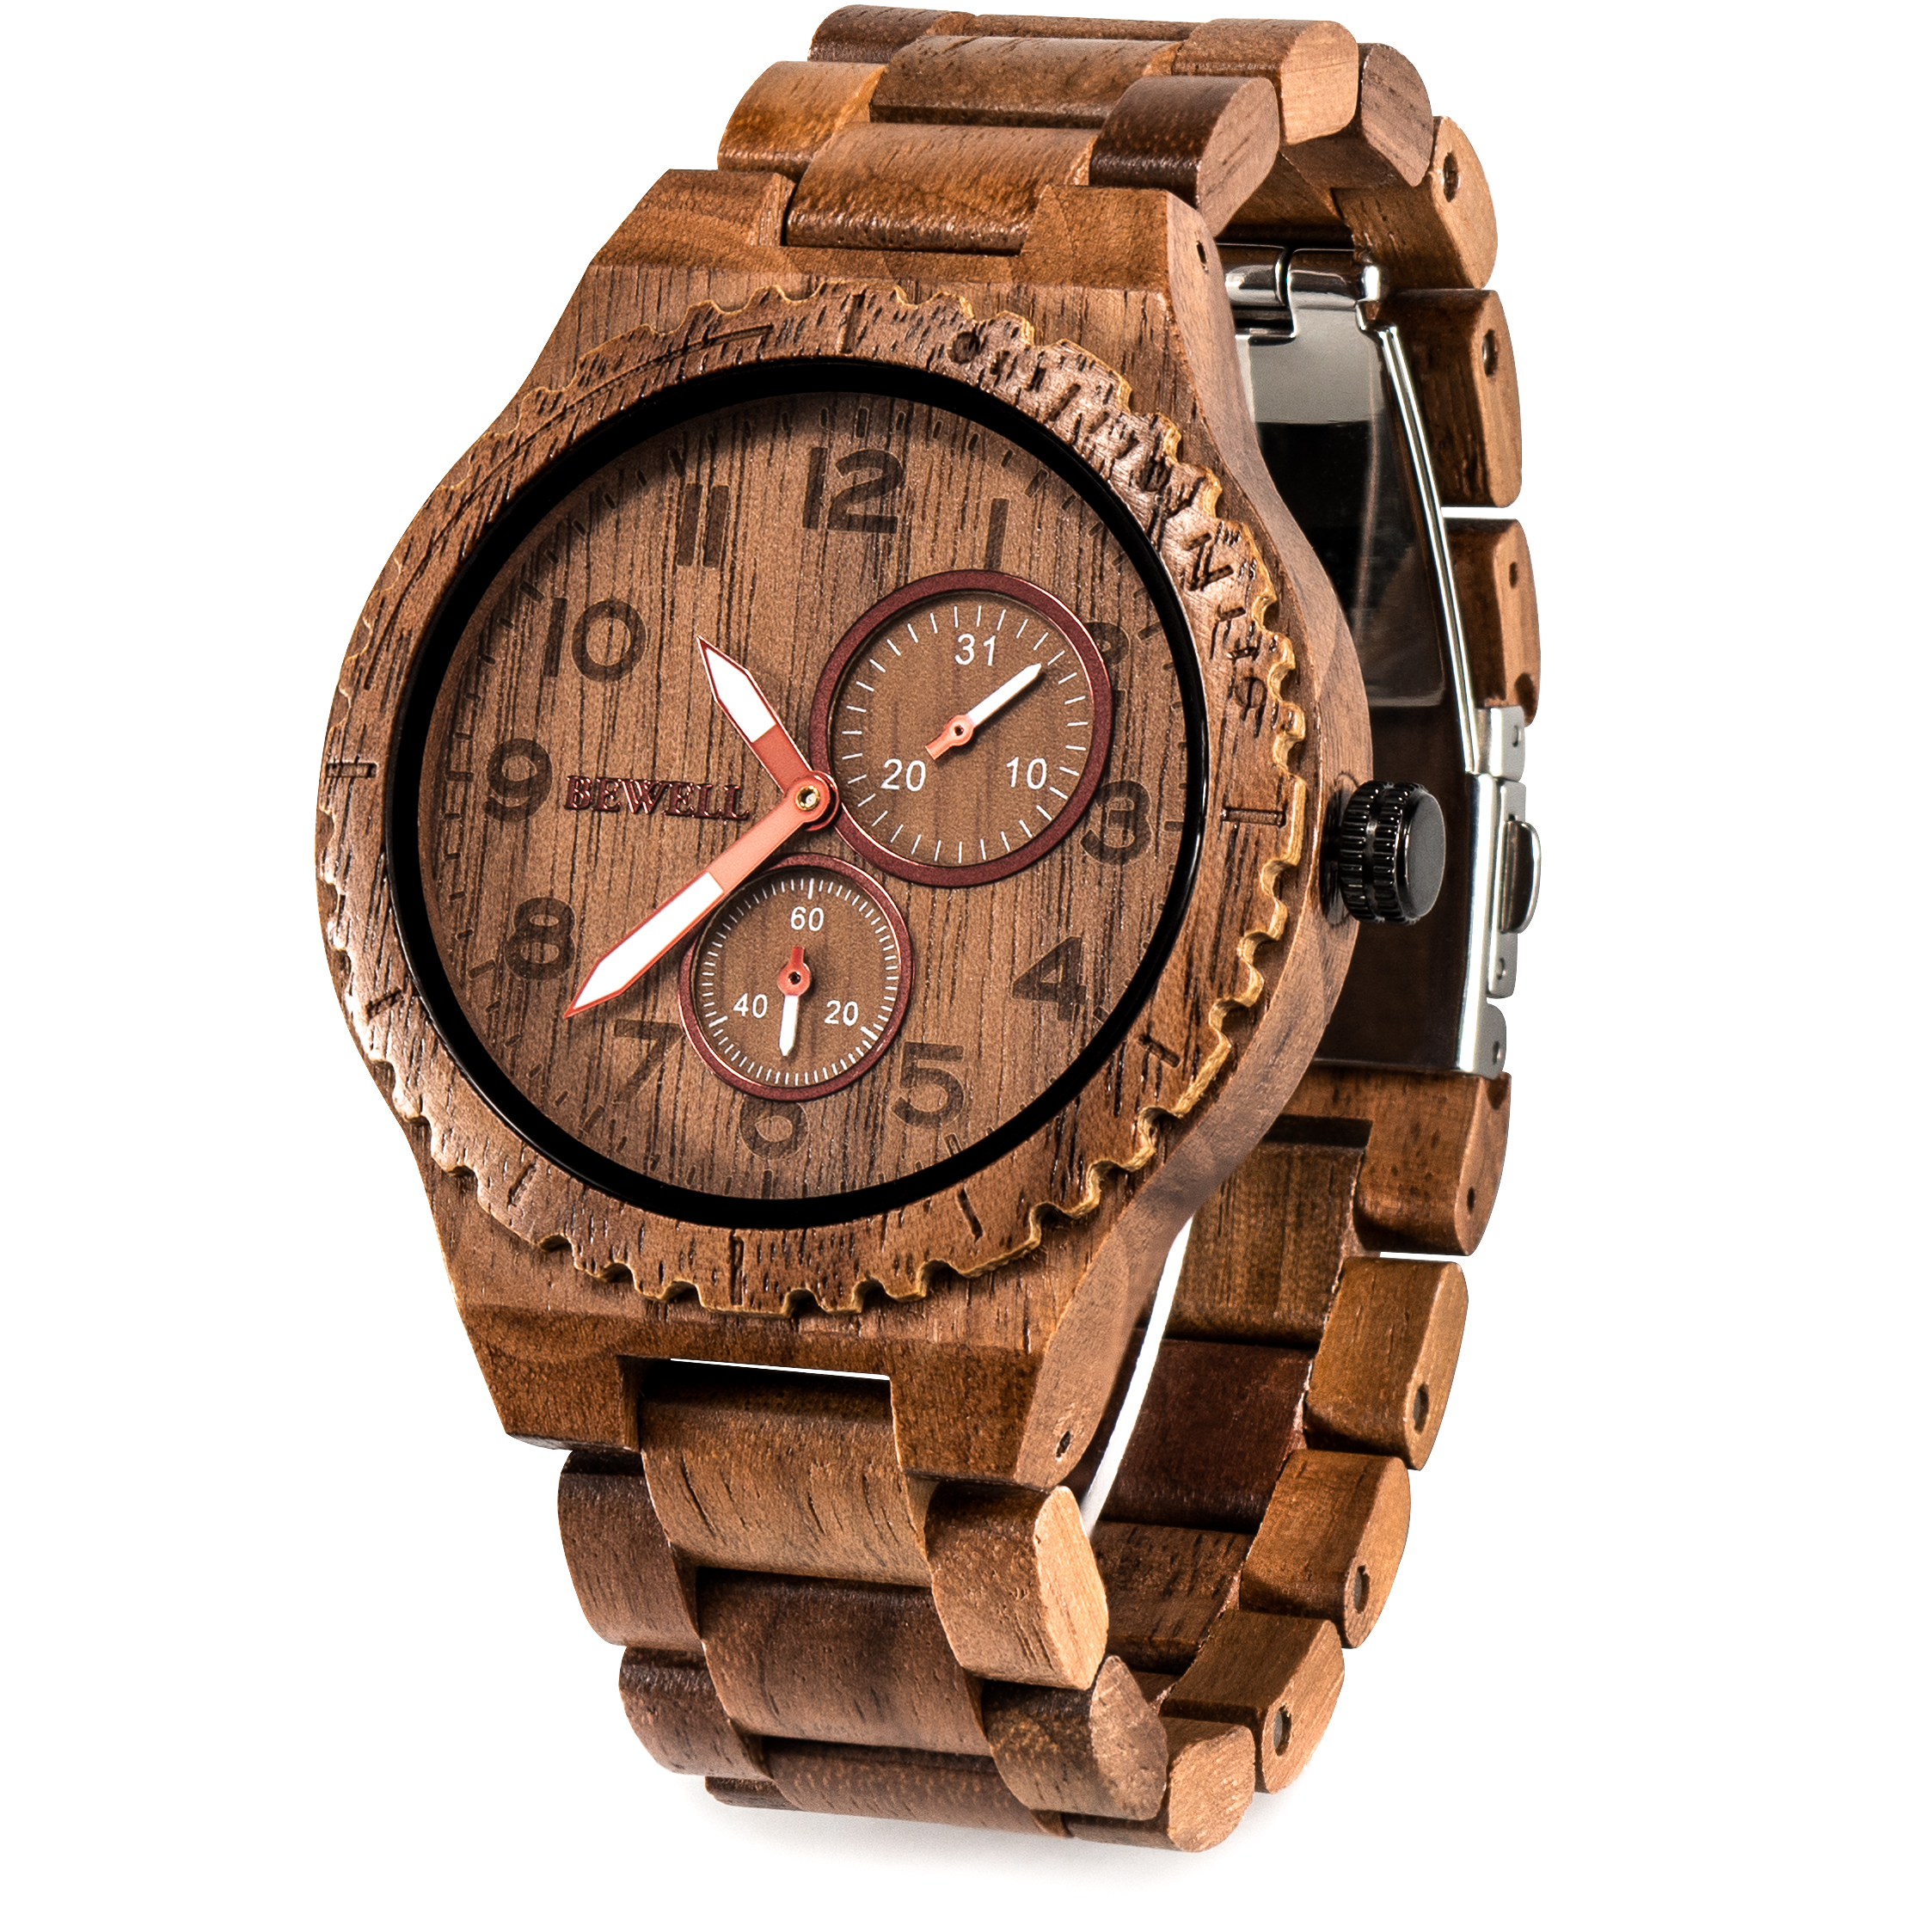 BEWELL Wooden Watch Men Quartz Date Casual Retro Reloj Hombre Lightweight Luminous Wood Watches For Men Relogio Masculino W154A